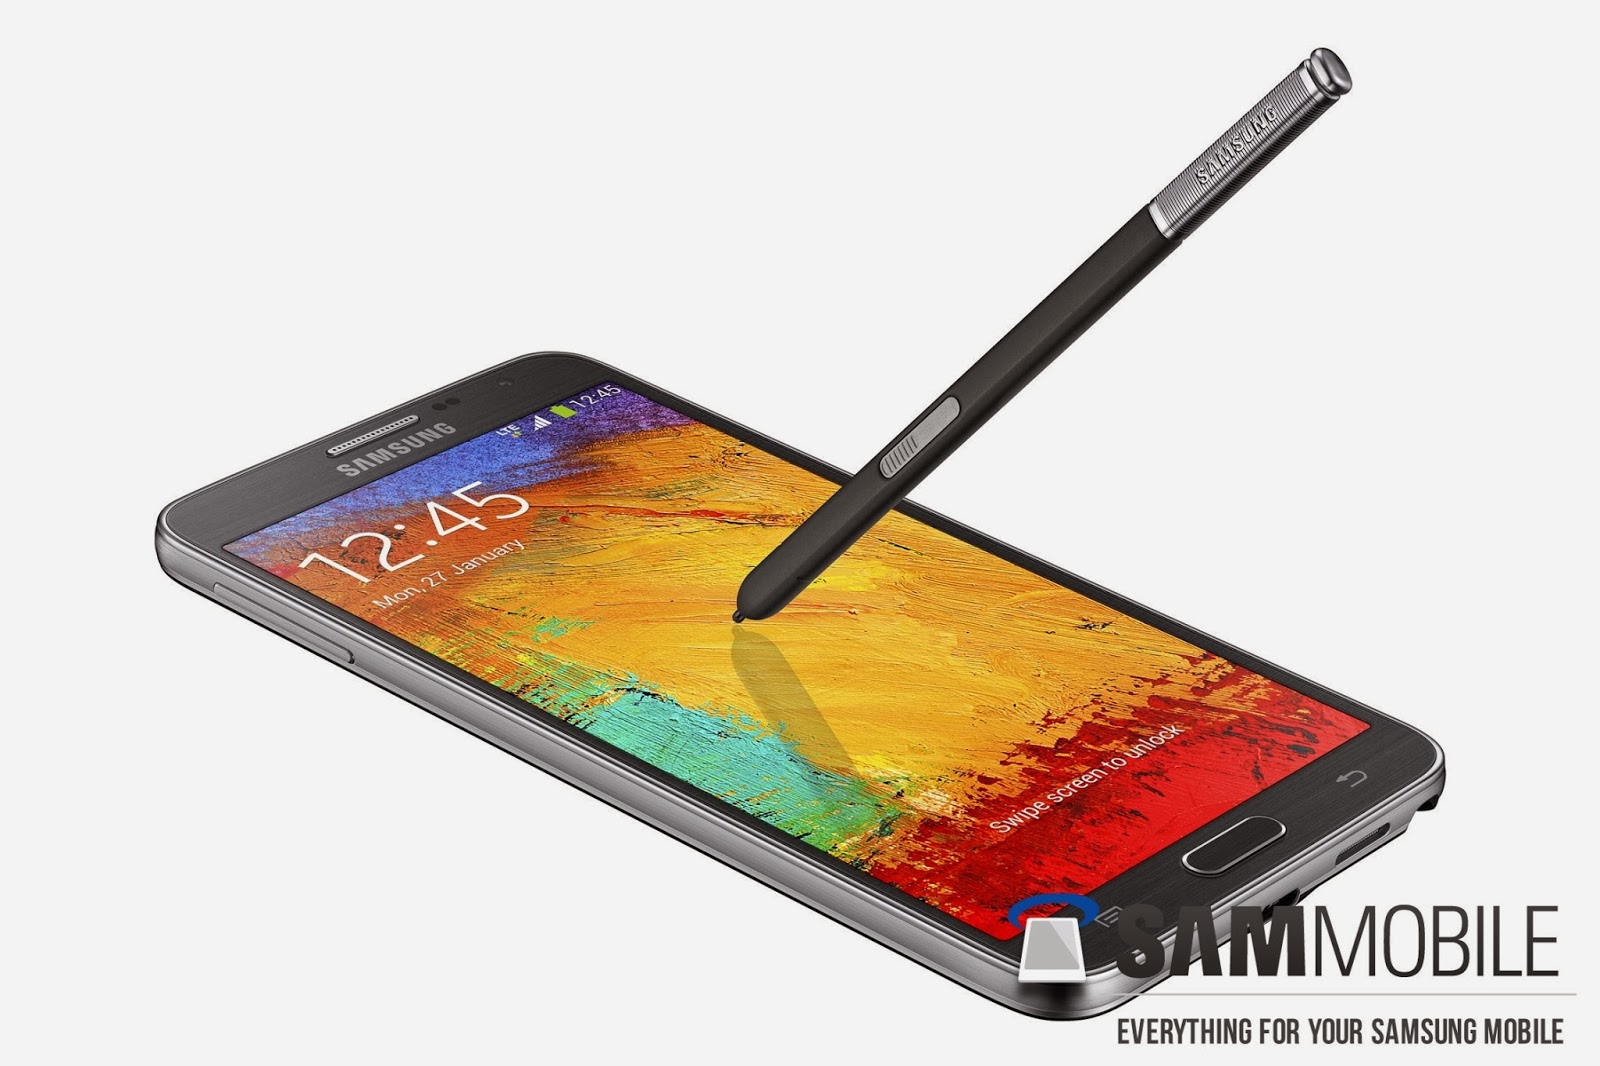 Official Samsung Galaxy Note 3 Neo